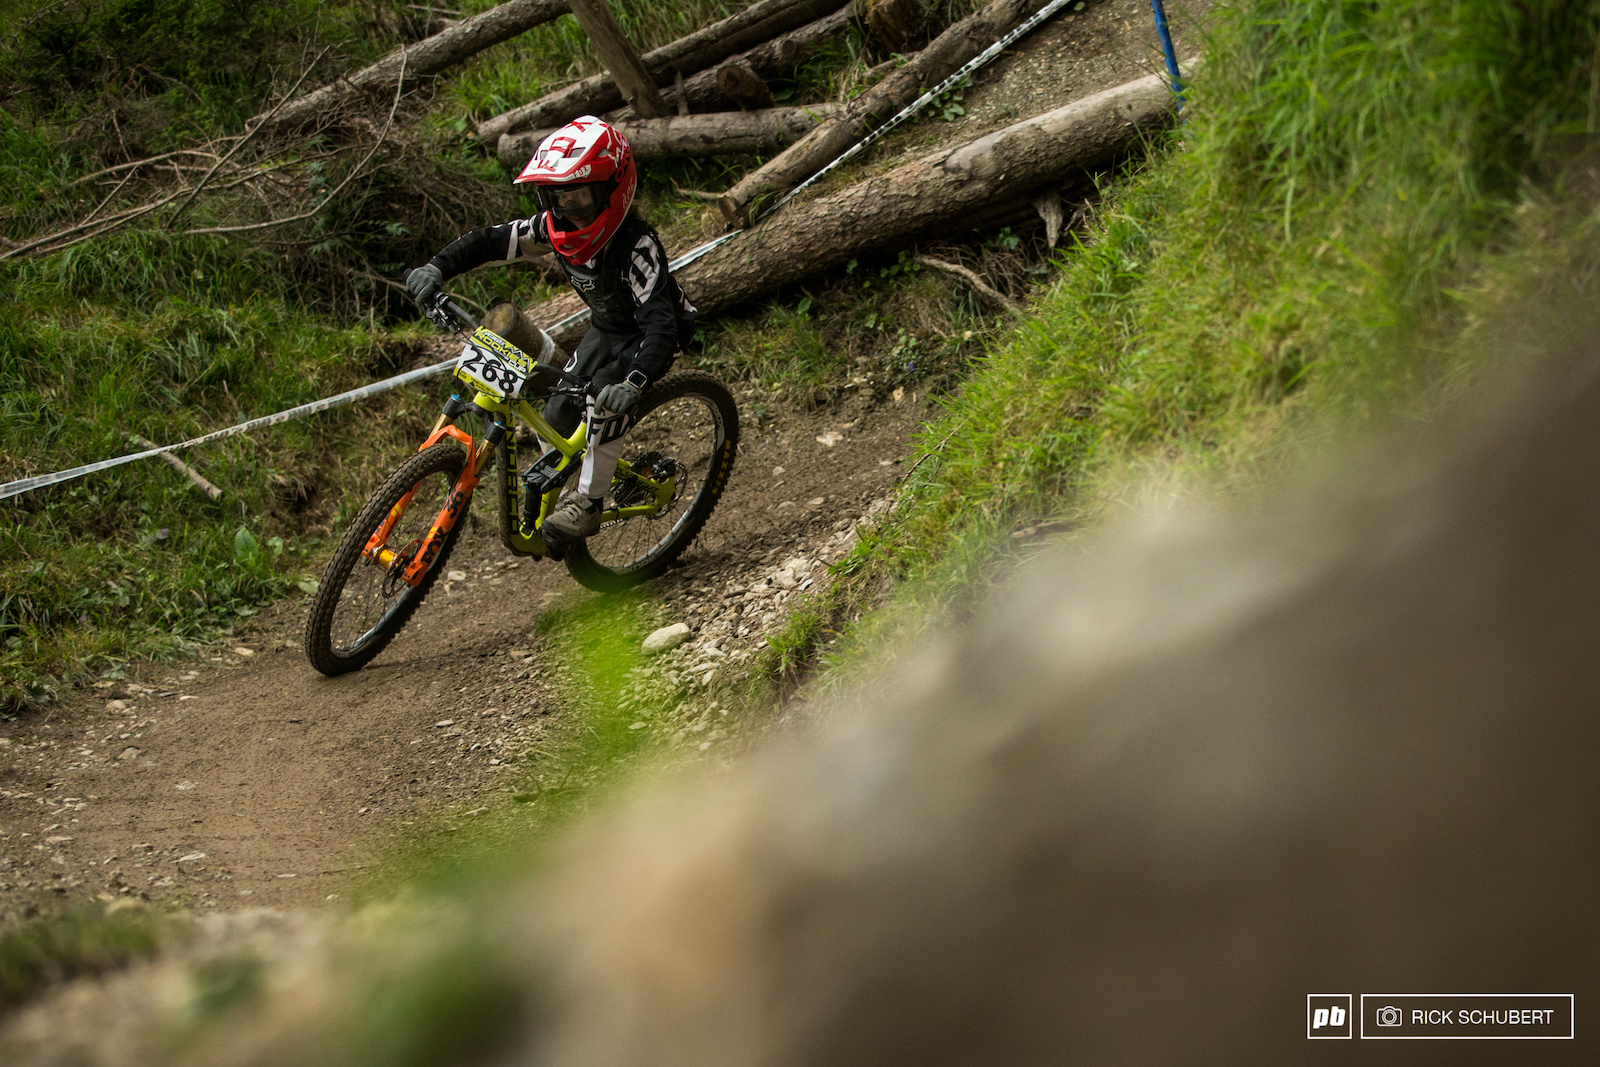 Jackson Goldstone put in the effort riding countless runs in the early practise session